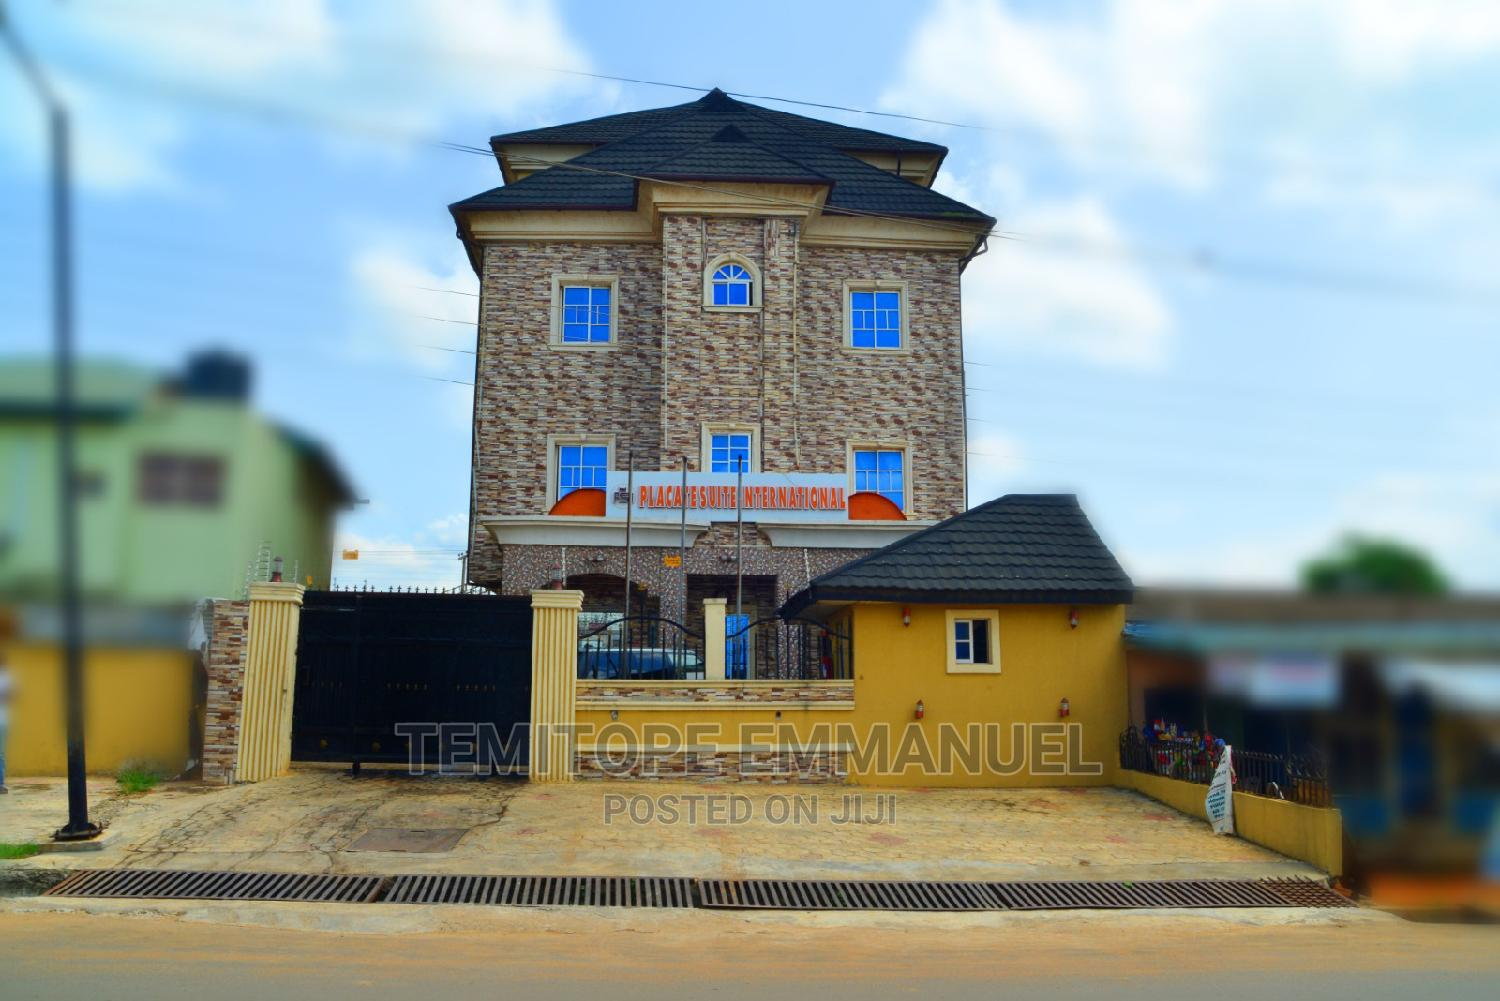 Hotel of 18 Room With 3 Suits on 2plot of Land Wit Micano